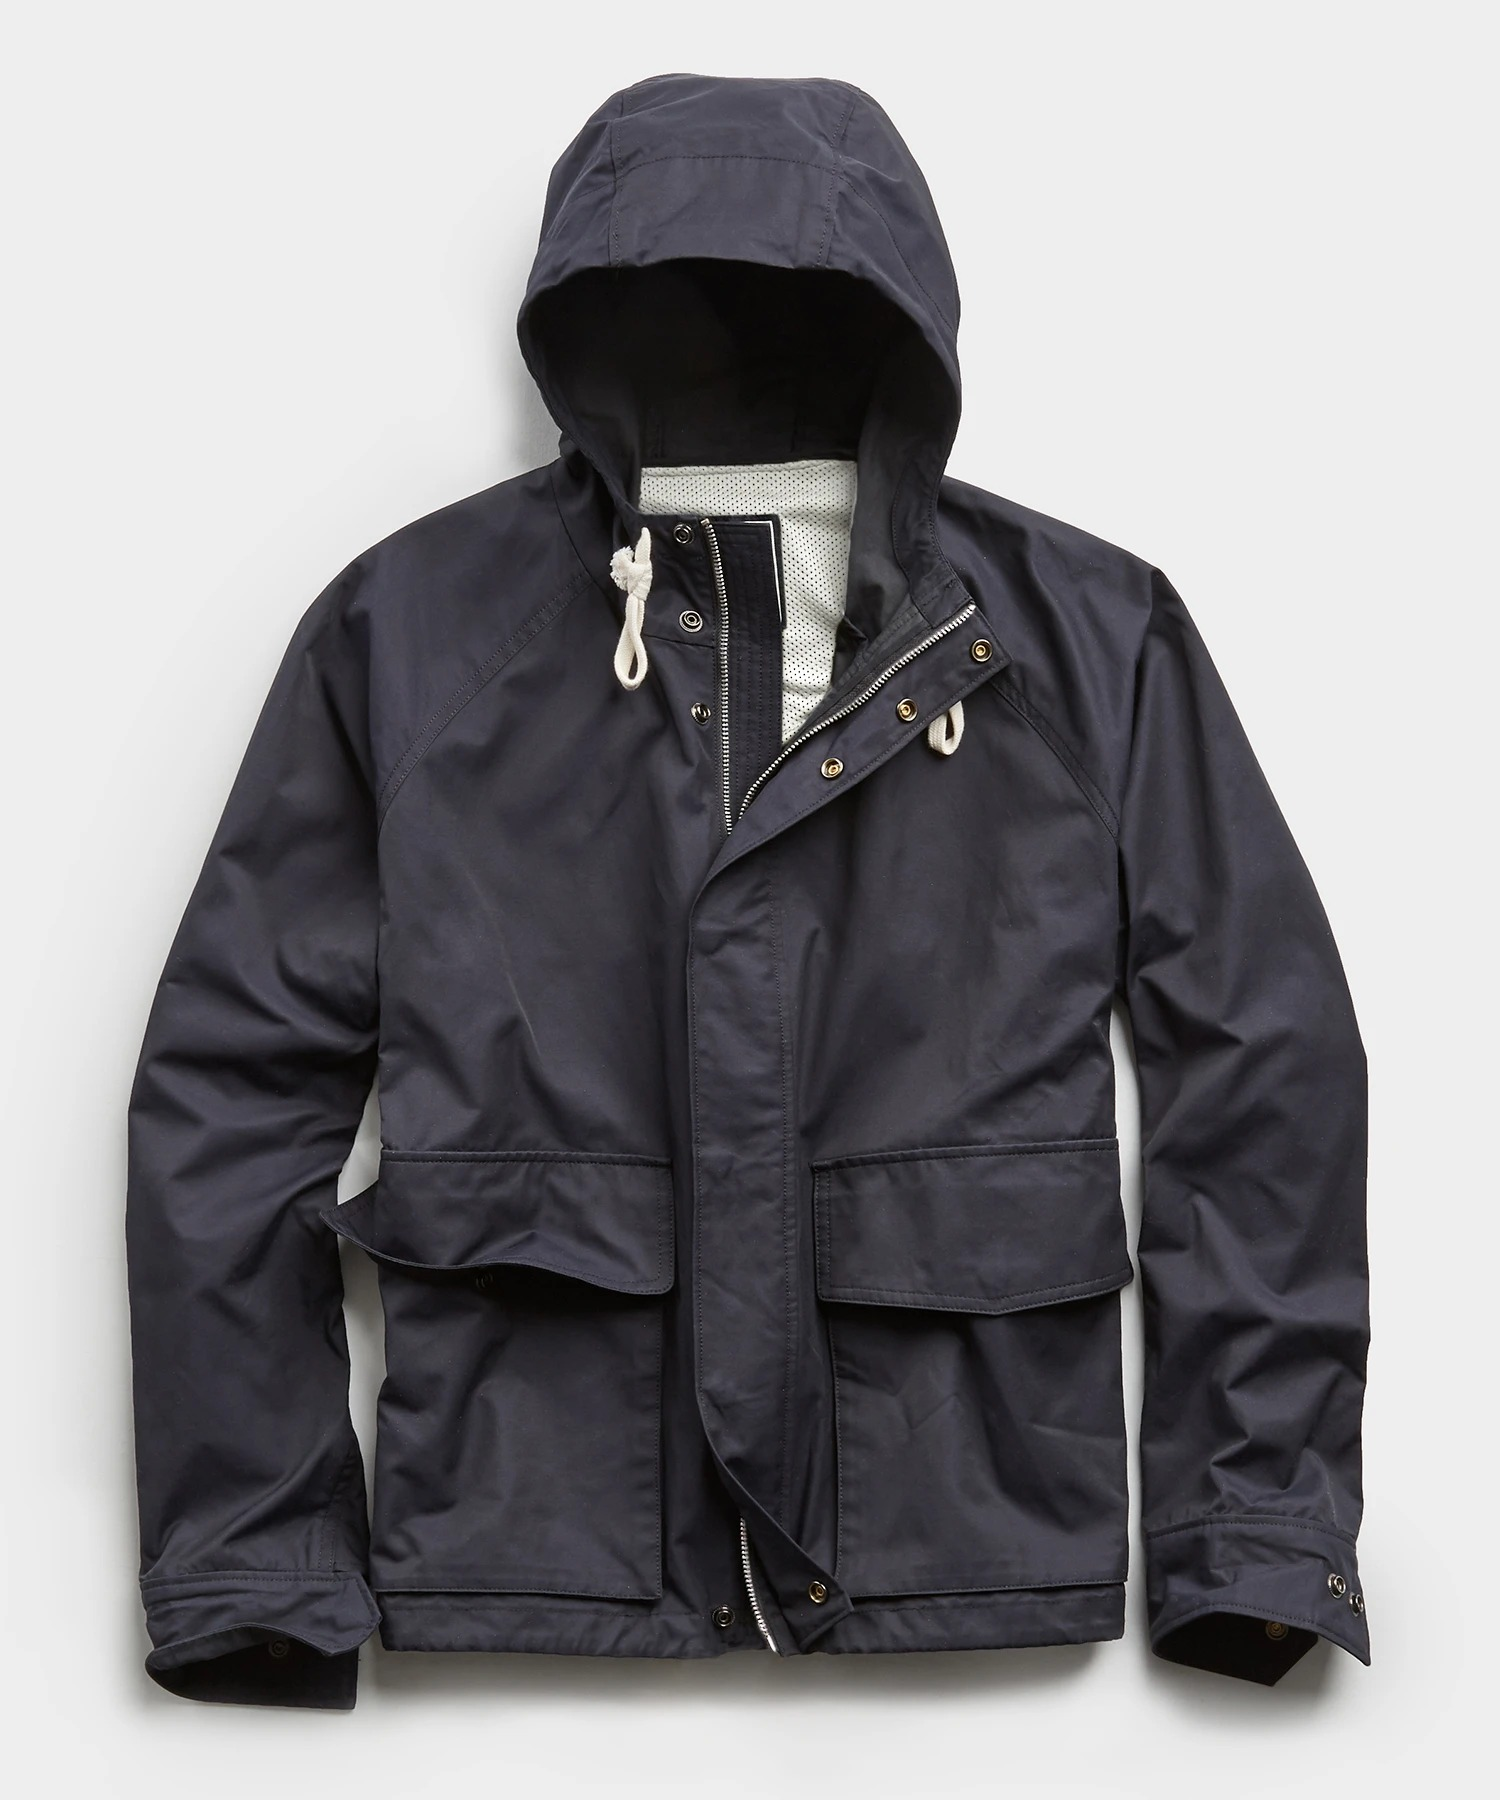 Todd Snyder Made in New York Dock Jacket